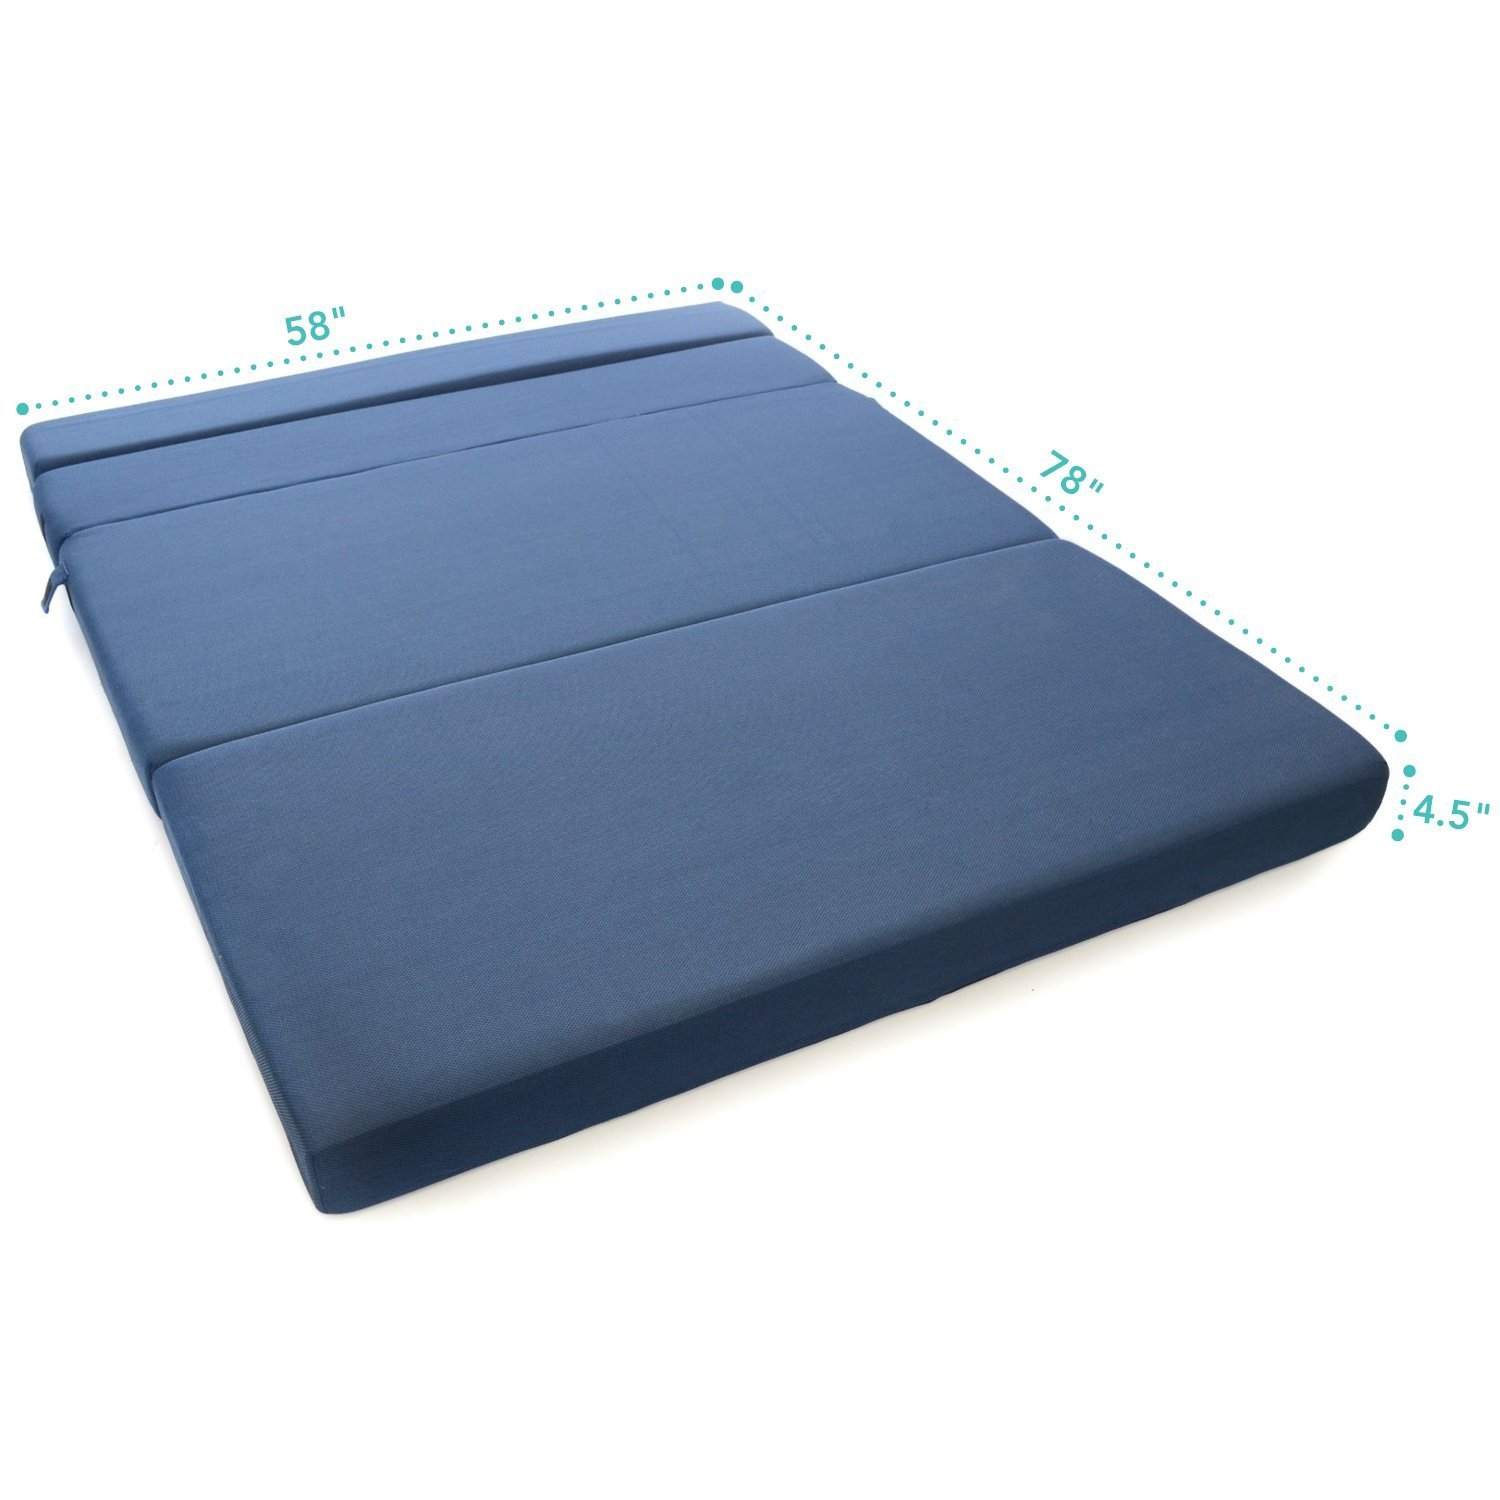 Tri Fold Foam Folding Mattress And Sofa Bed Queen Milliard Bedding